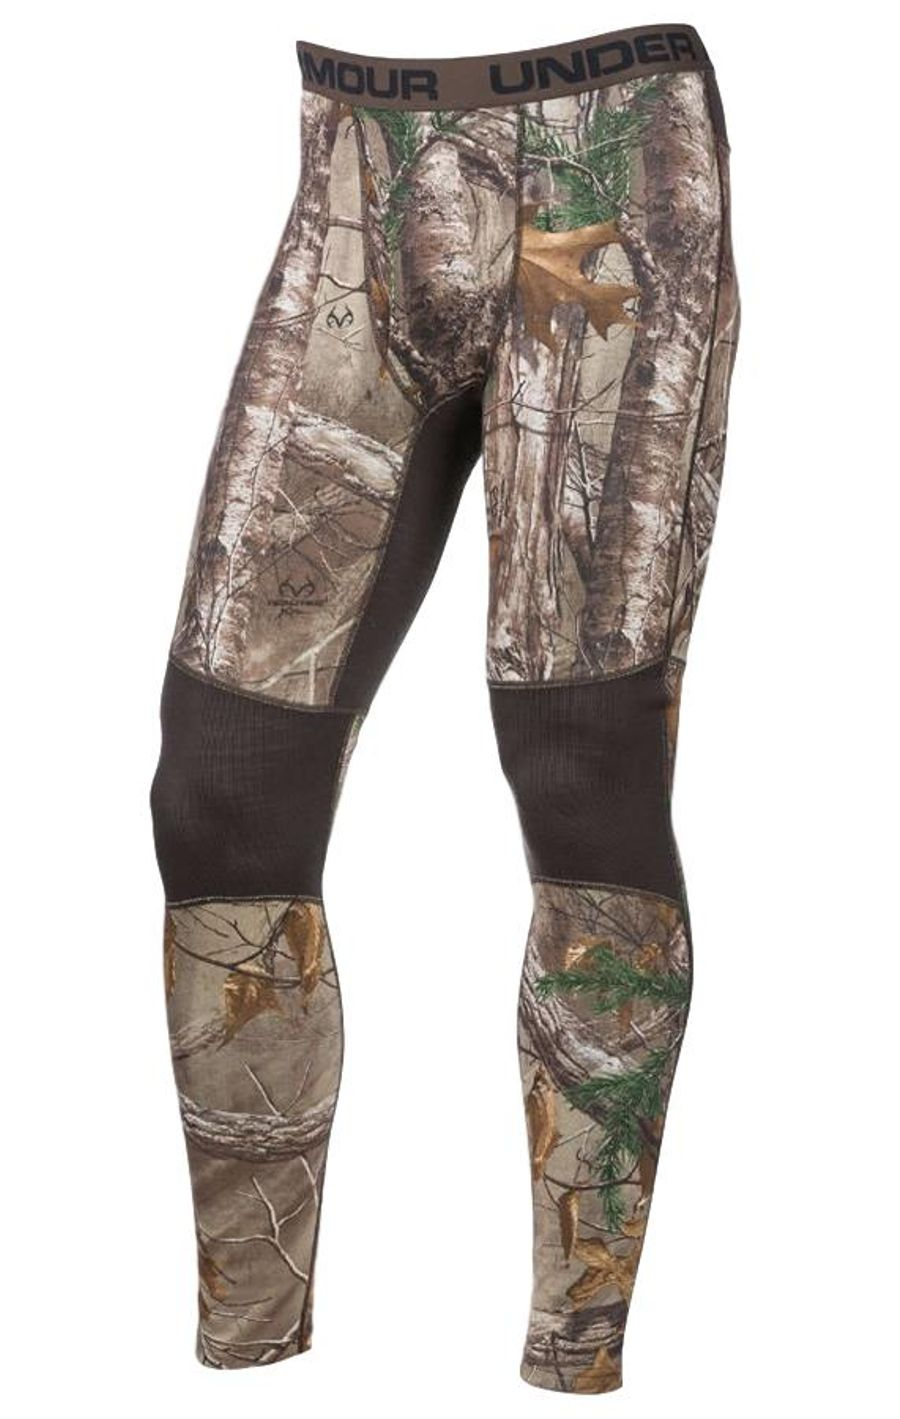 4838872507bf71 Details about Under Armour Men's UA ColdGear Mid Season Reversible Wool  Hunting Leggings - NWT